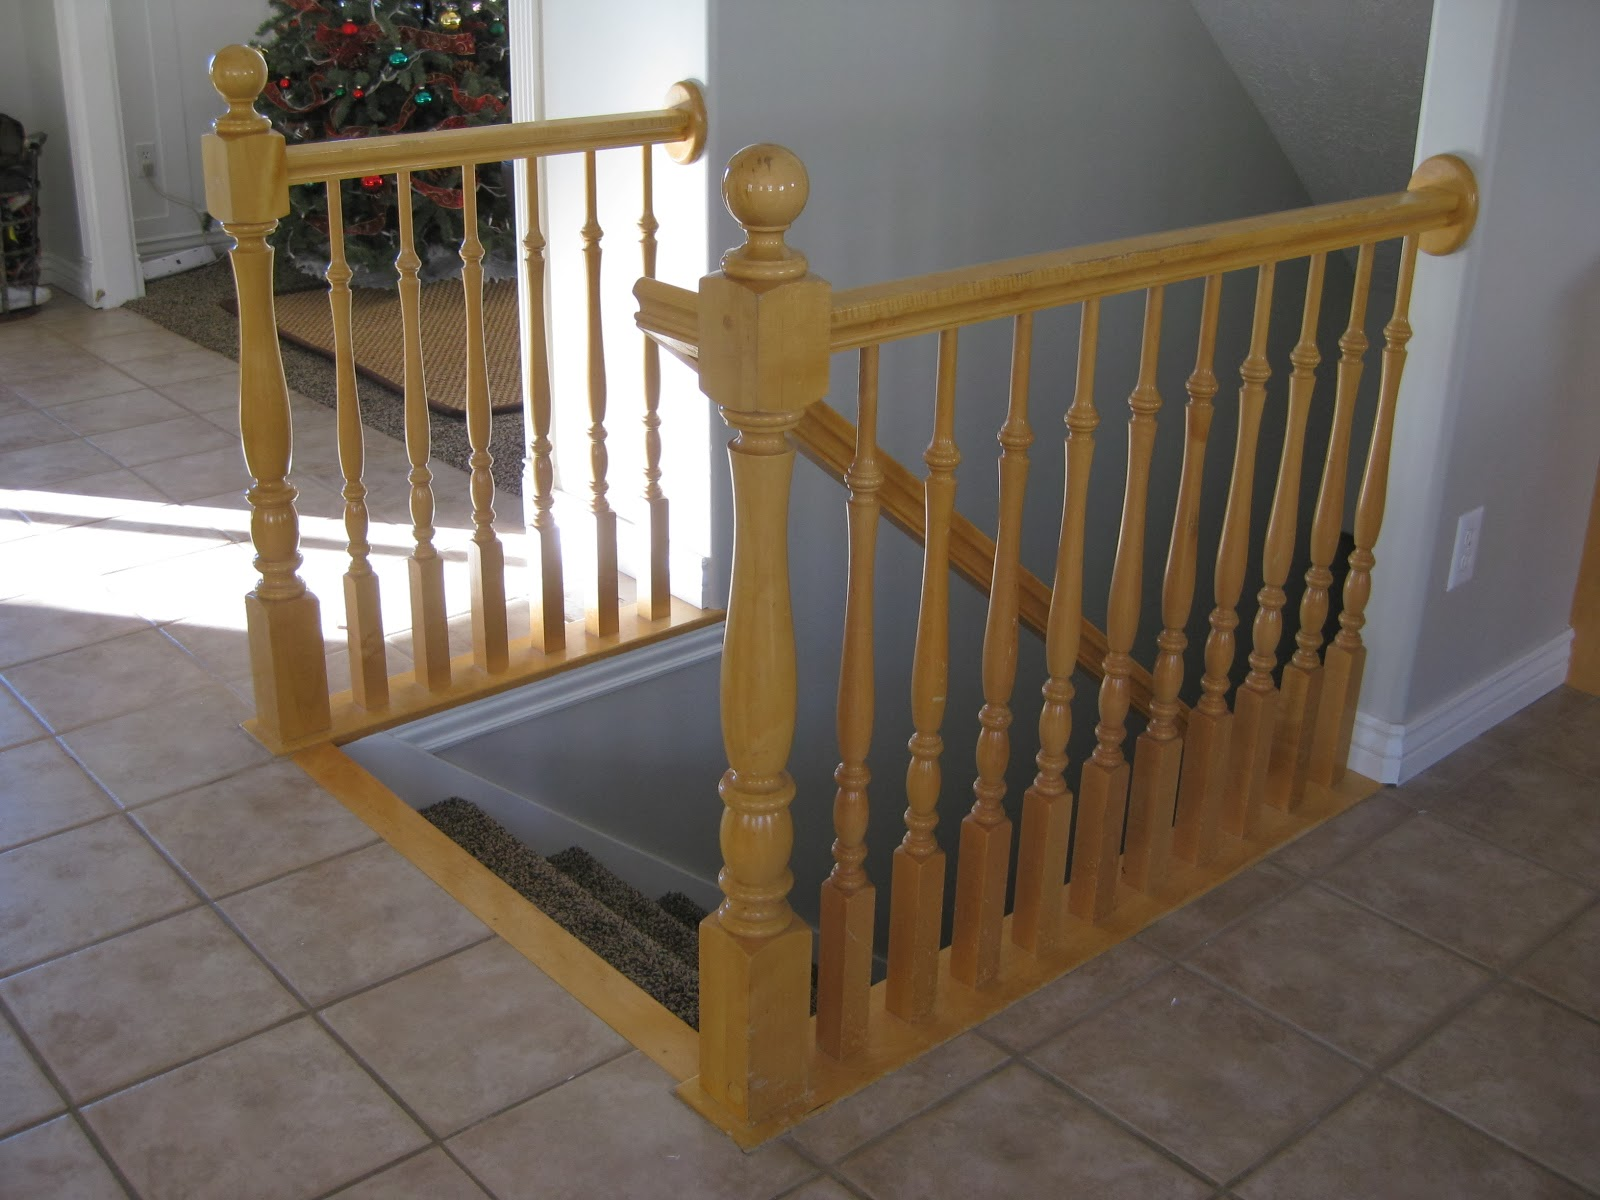 Diy Stair Banister Tutorial Part 1 Building Around Existing Newel Post